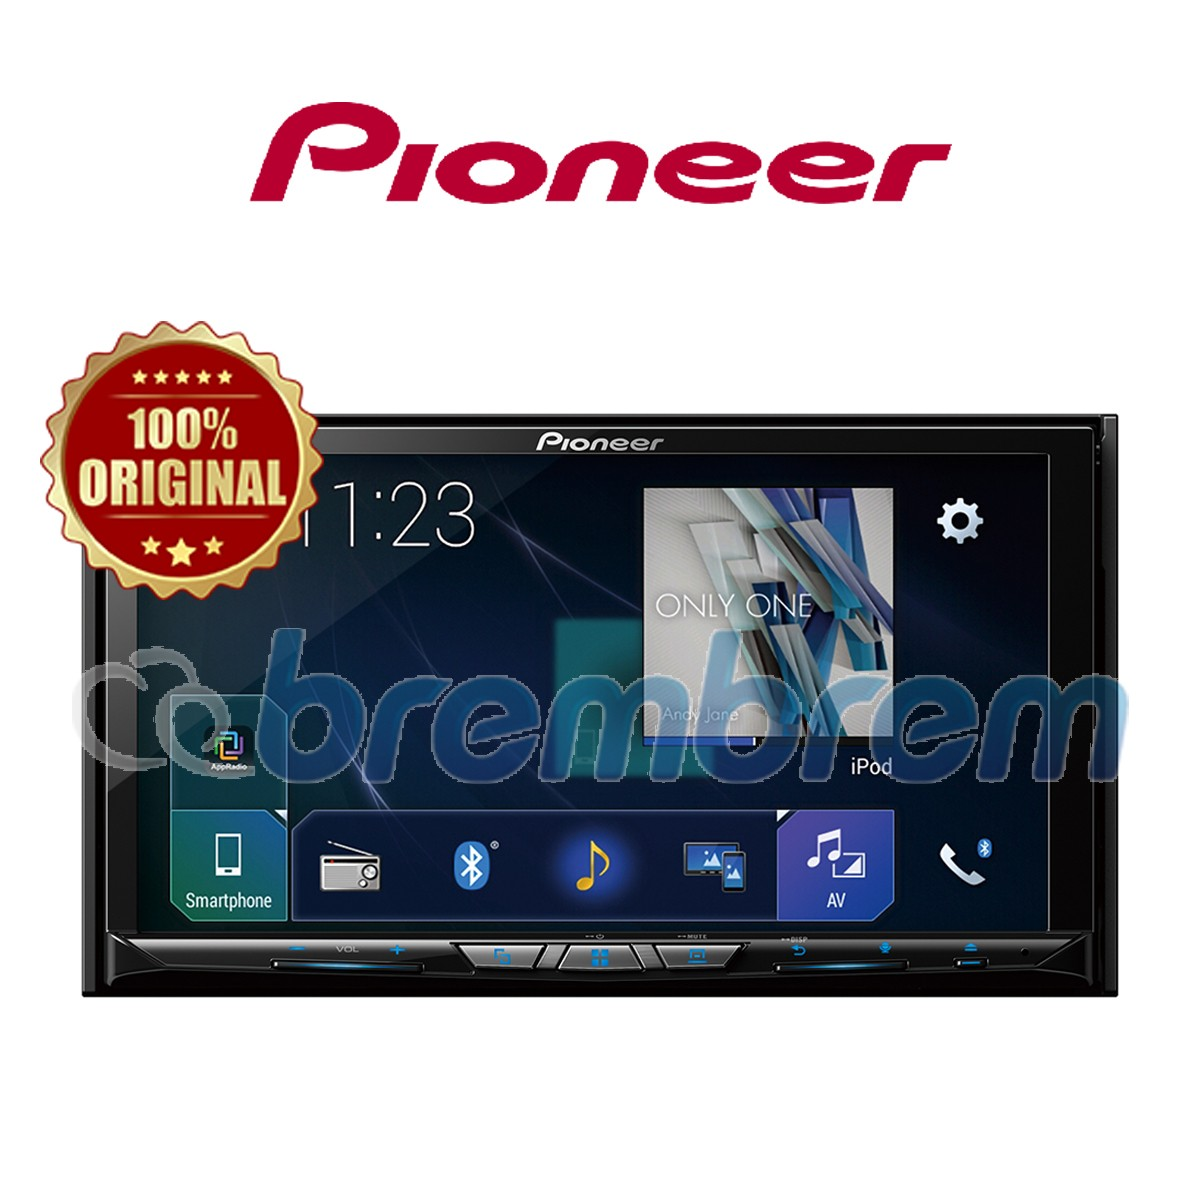 PIONEER AVH-Z9150BT - HEADUNIT DOUBLE DIN